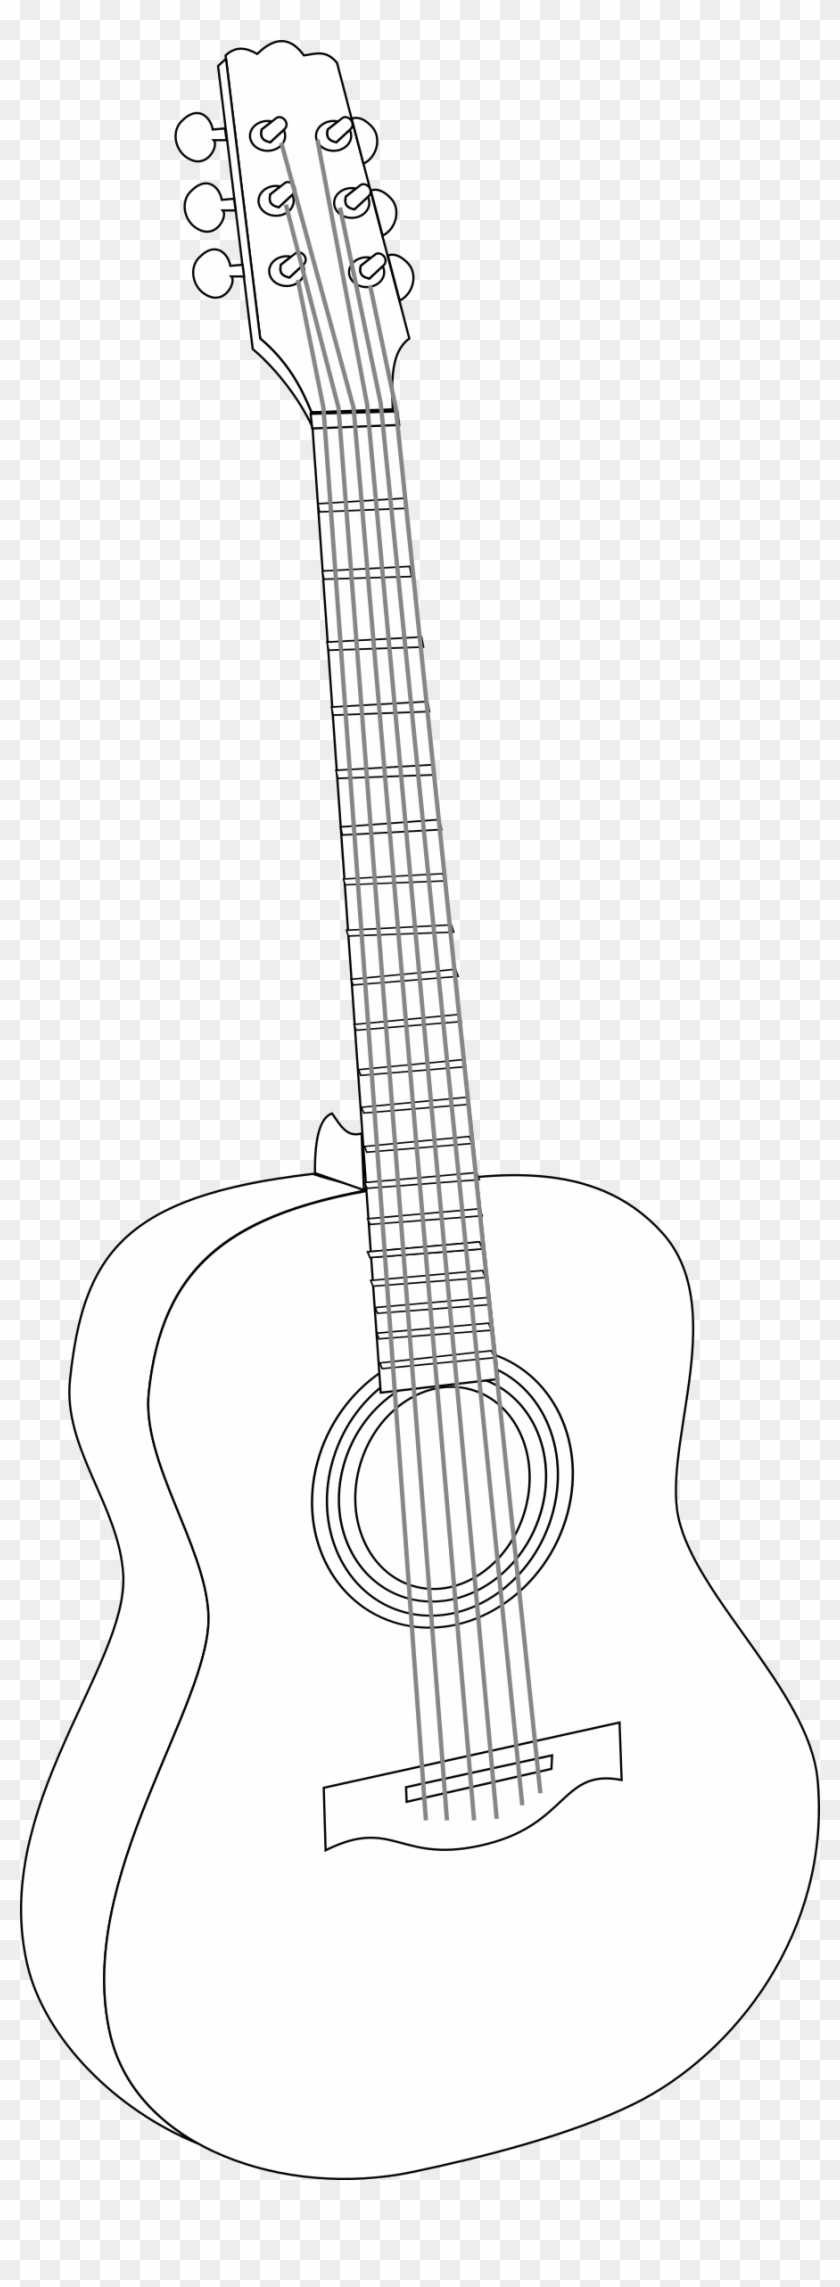 Guitar headstock drawing clipart black and white clip transparent Acoustic Guitar - Clipart - Acoustic Guitar Head Outline, HD Png ... clip transparent